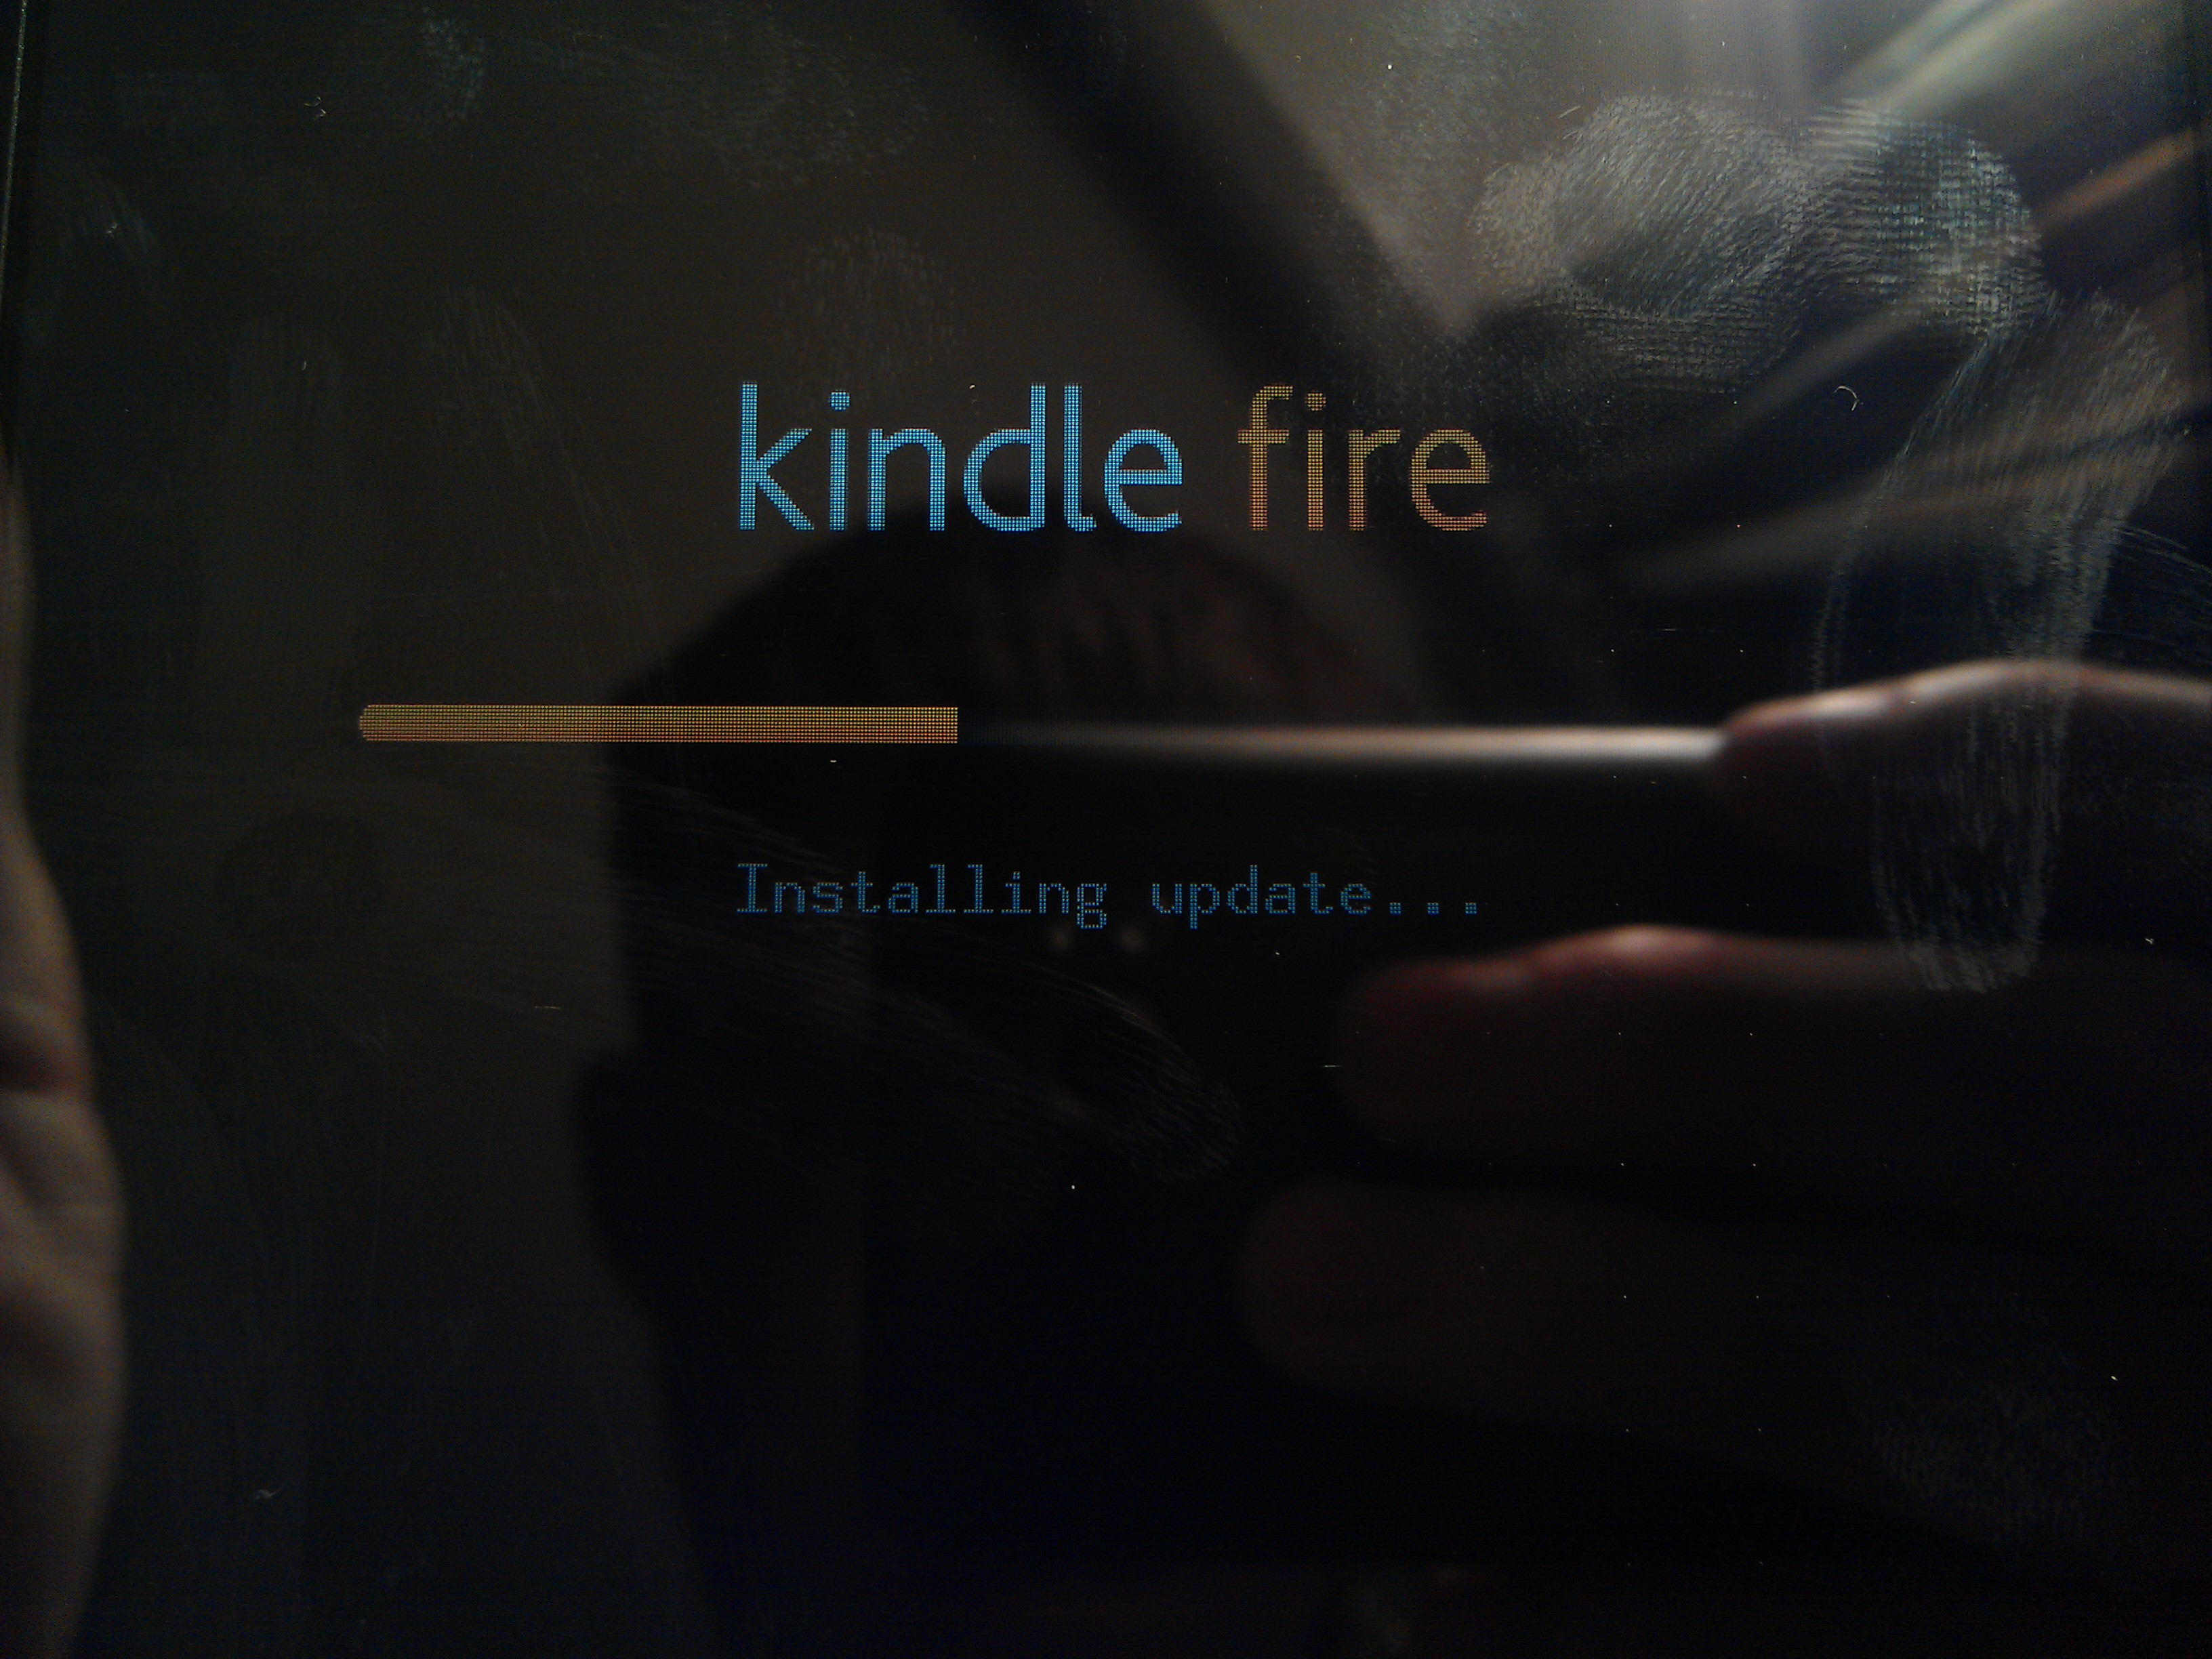 Kindle Fire Updating